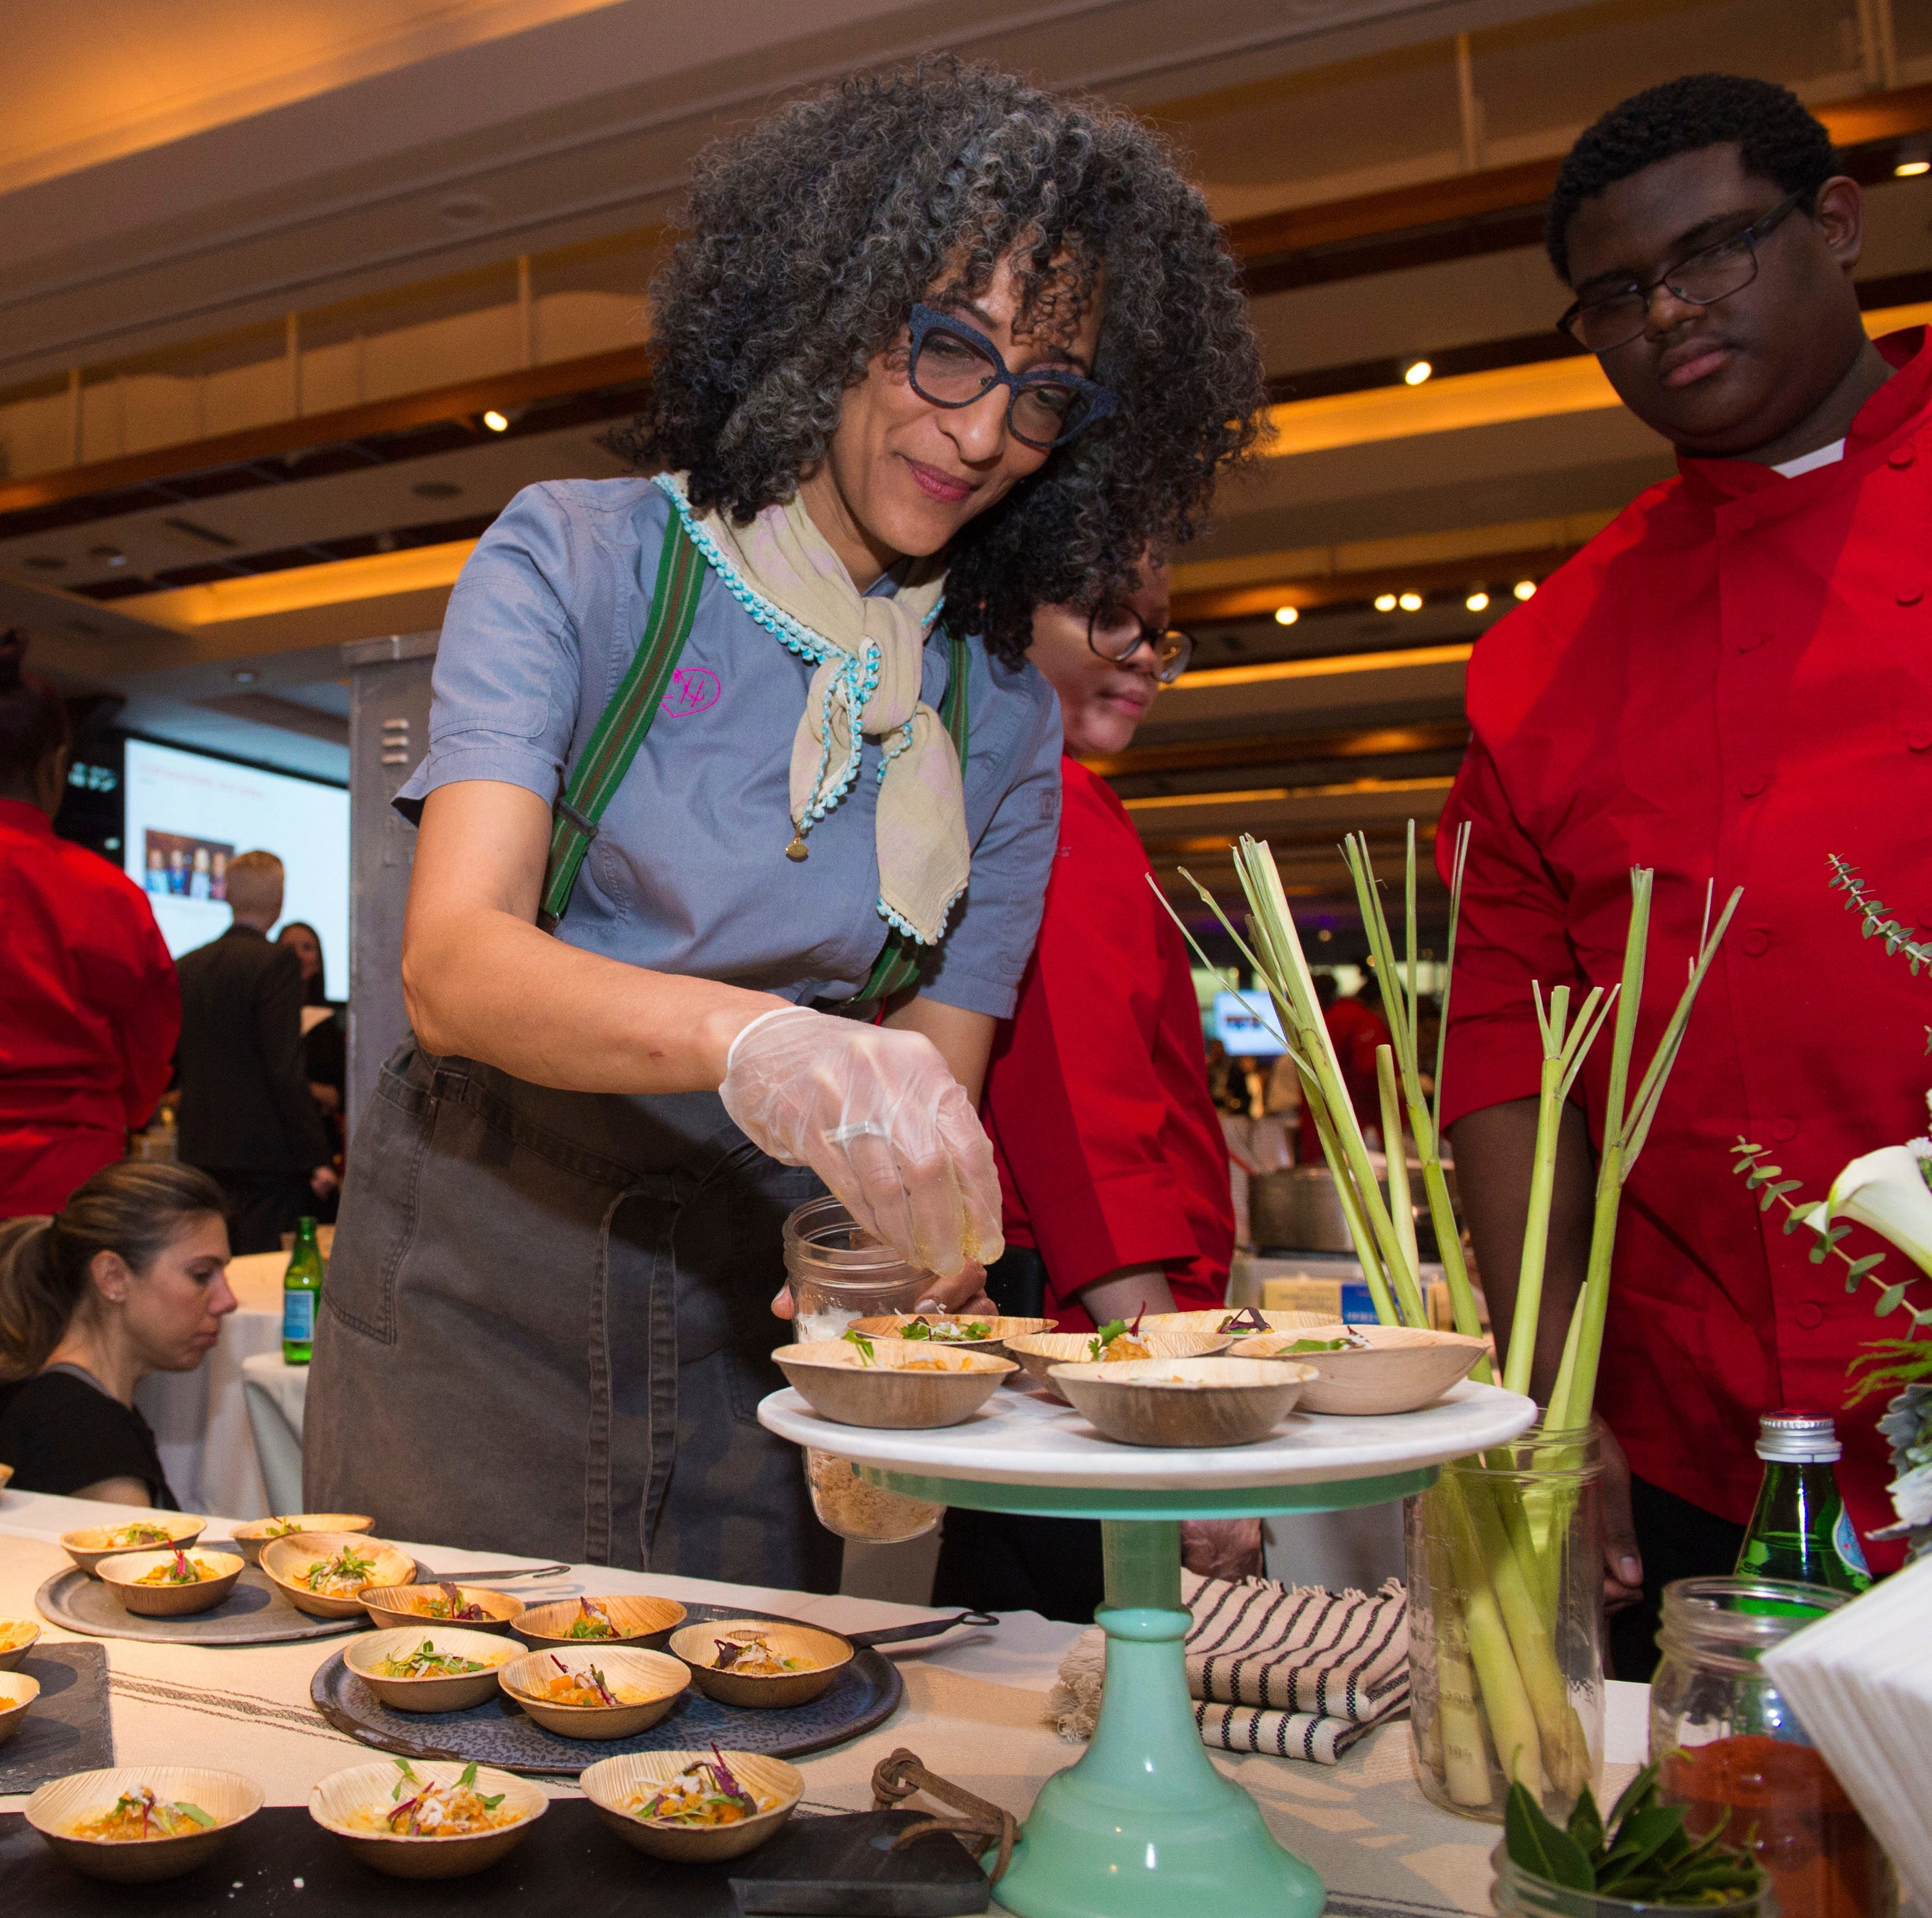 Soul food returns to black history roots as USA's first fusion cuisine